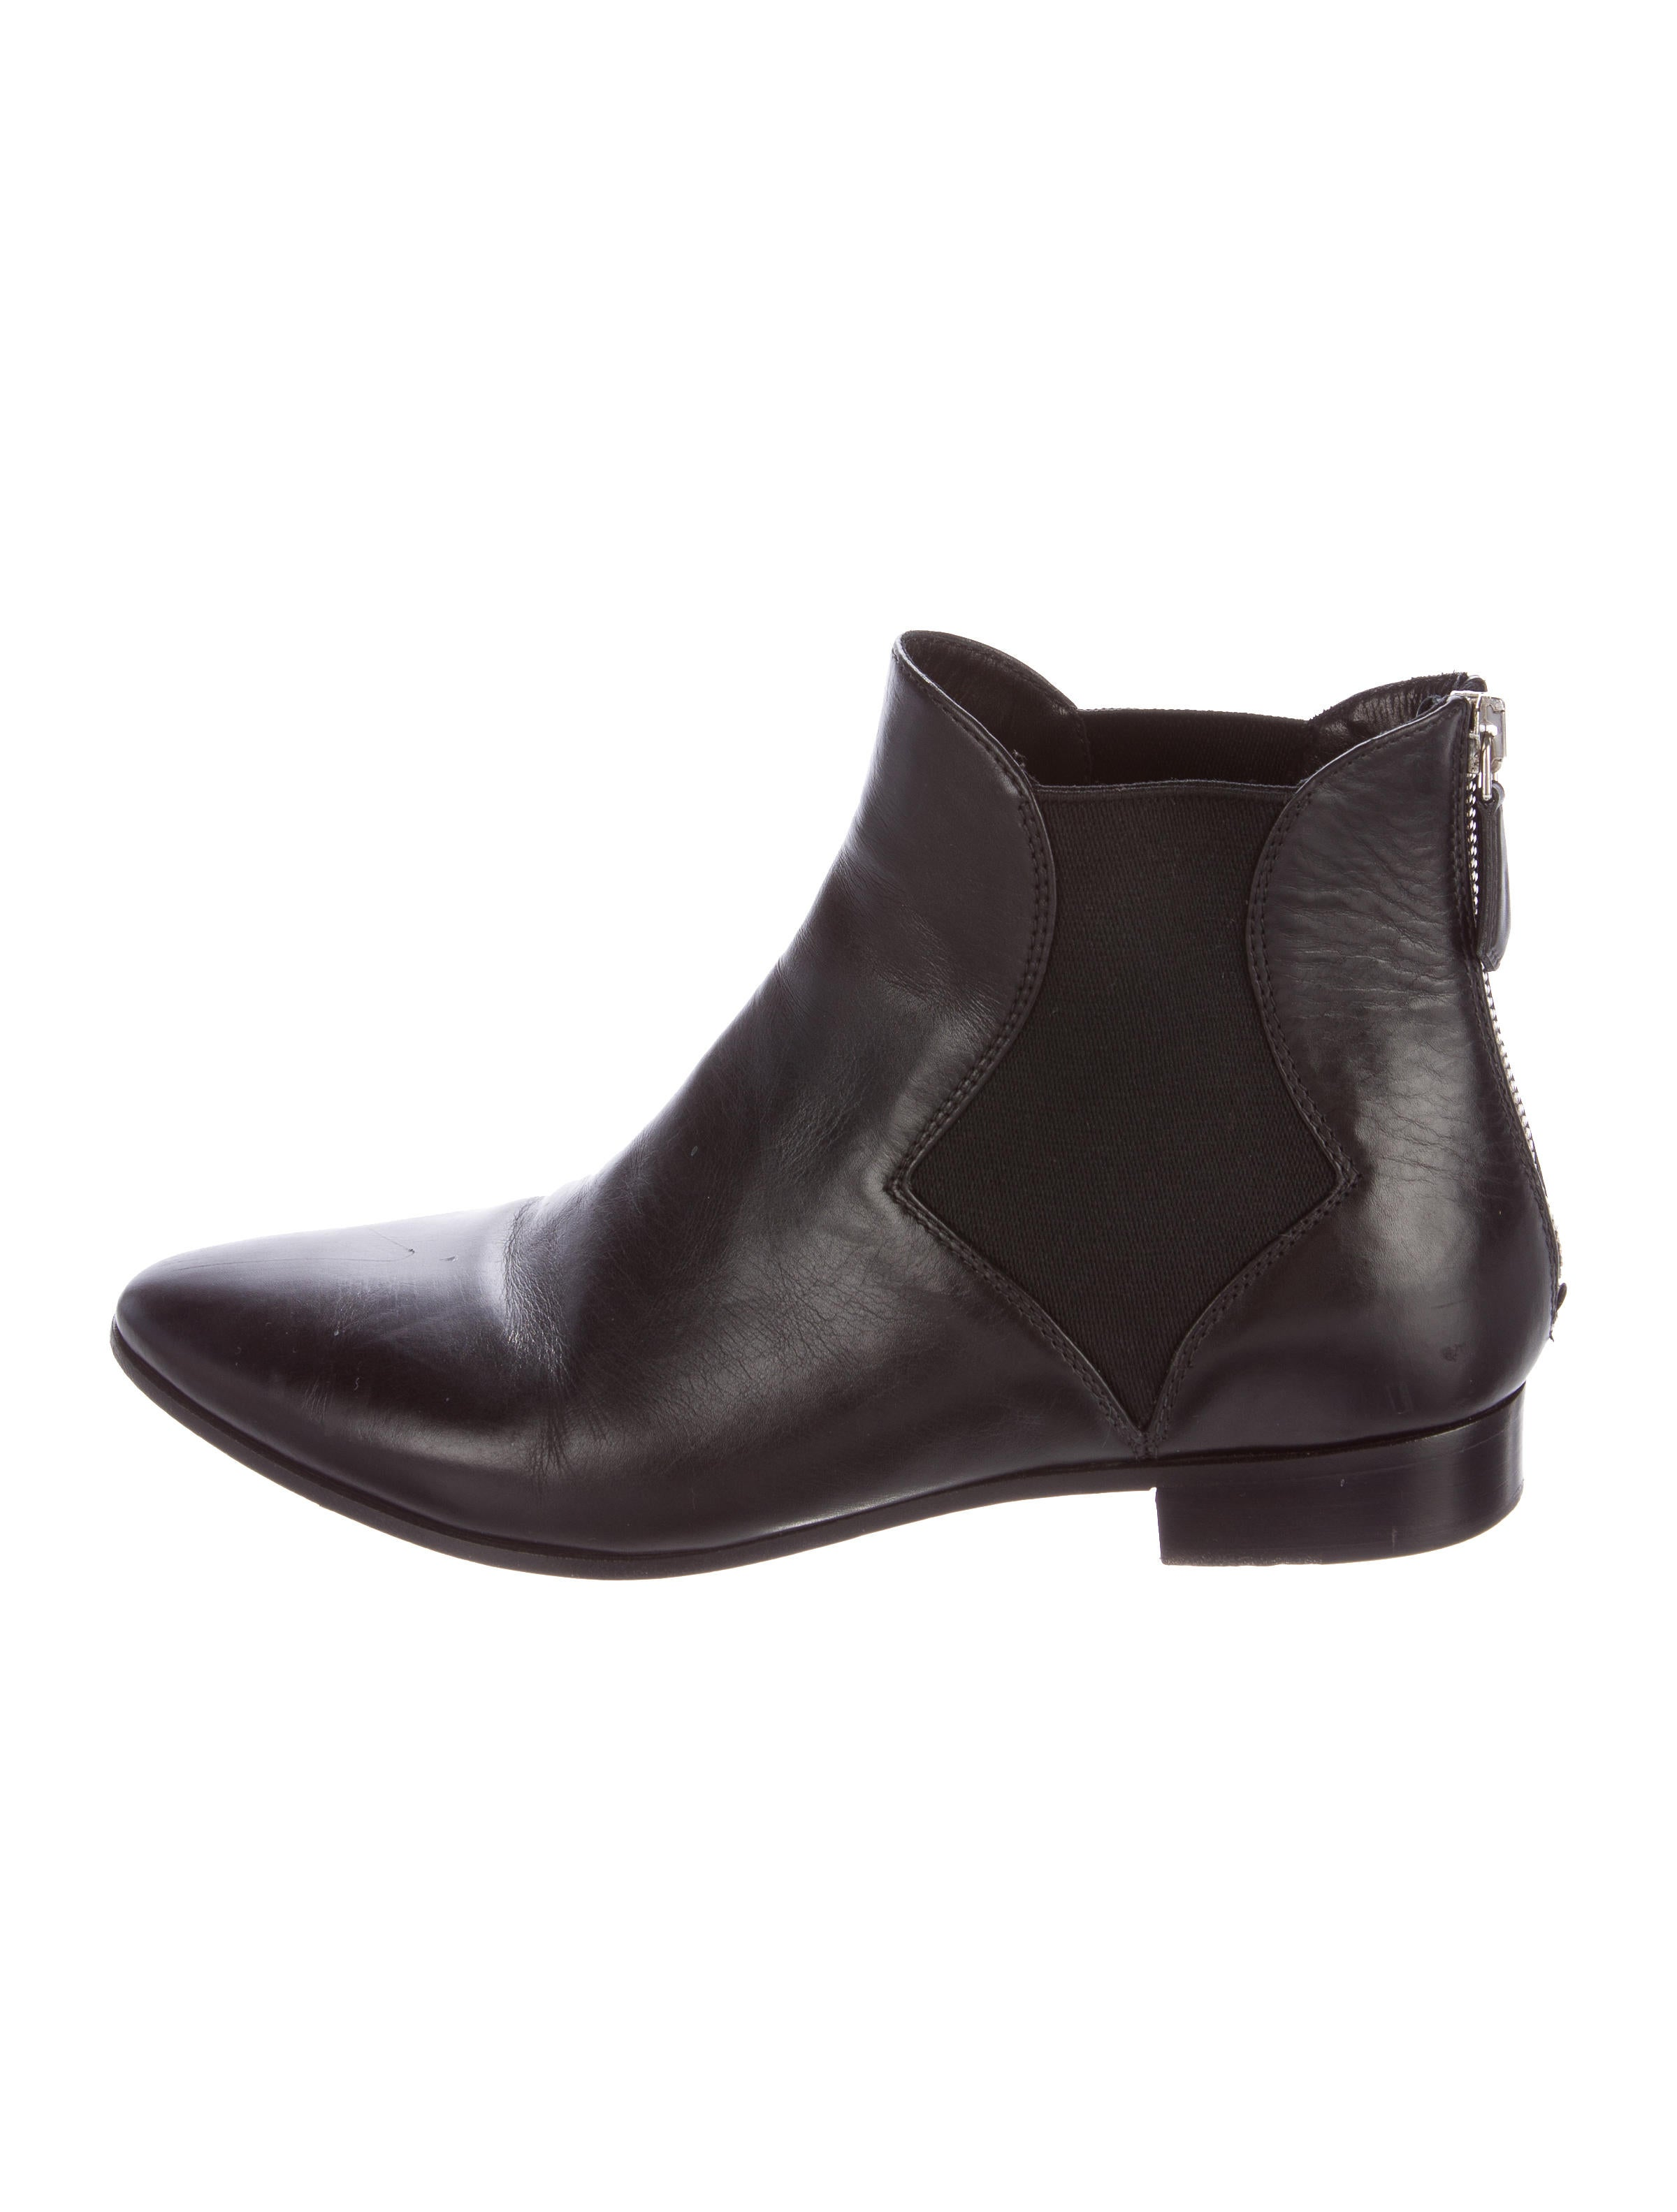 prada leather chelsea ankle boots shoes pra132480